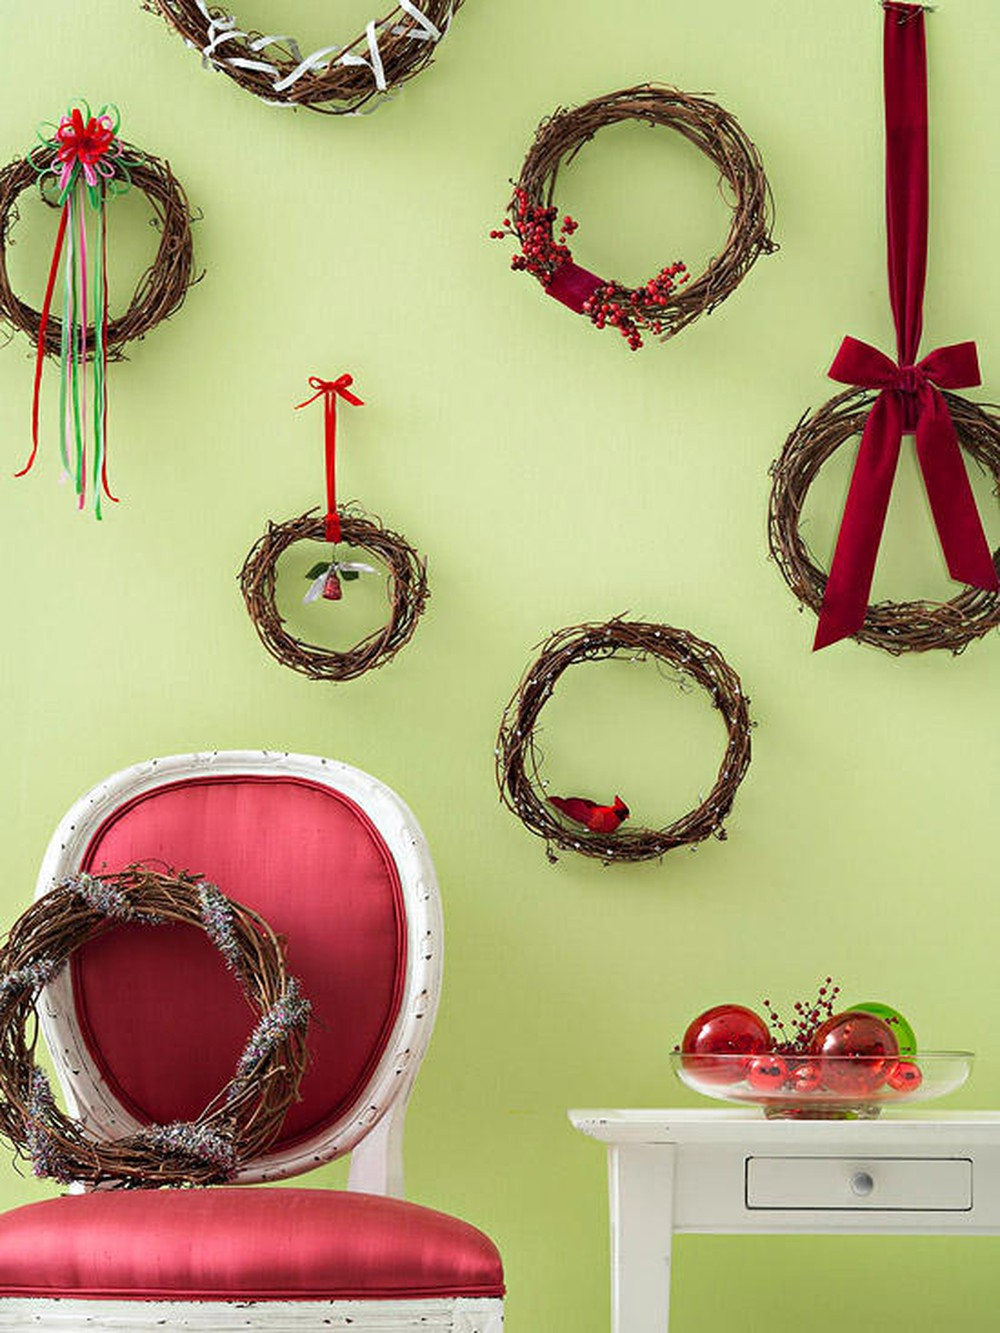 t5-17 Modern Christmas decoration ideas that are heartwarming